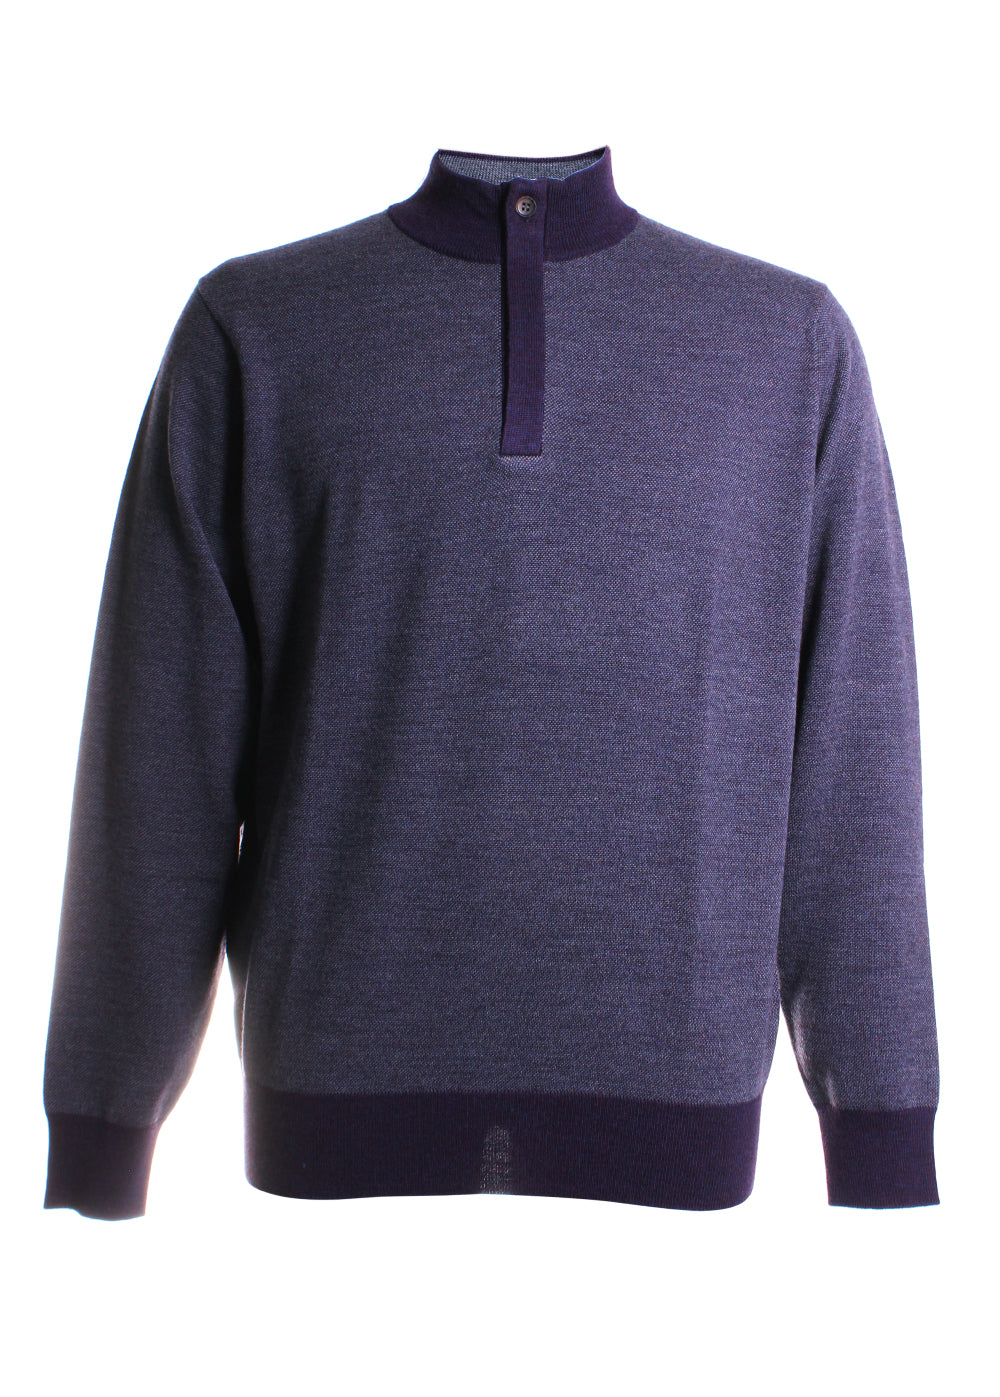 Birdseye Quarter Zip Sweater